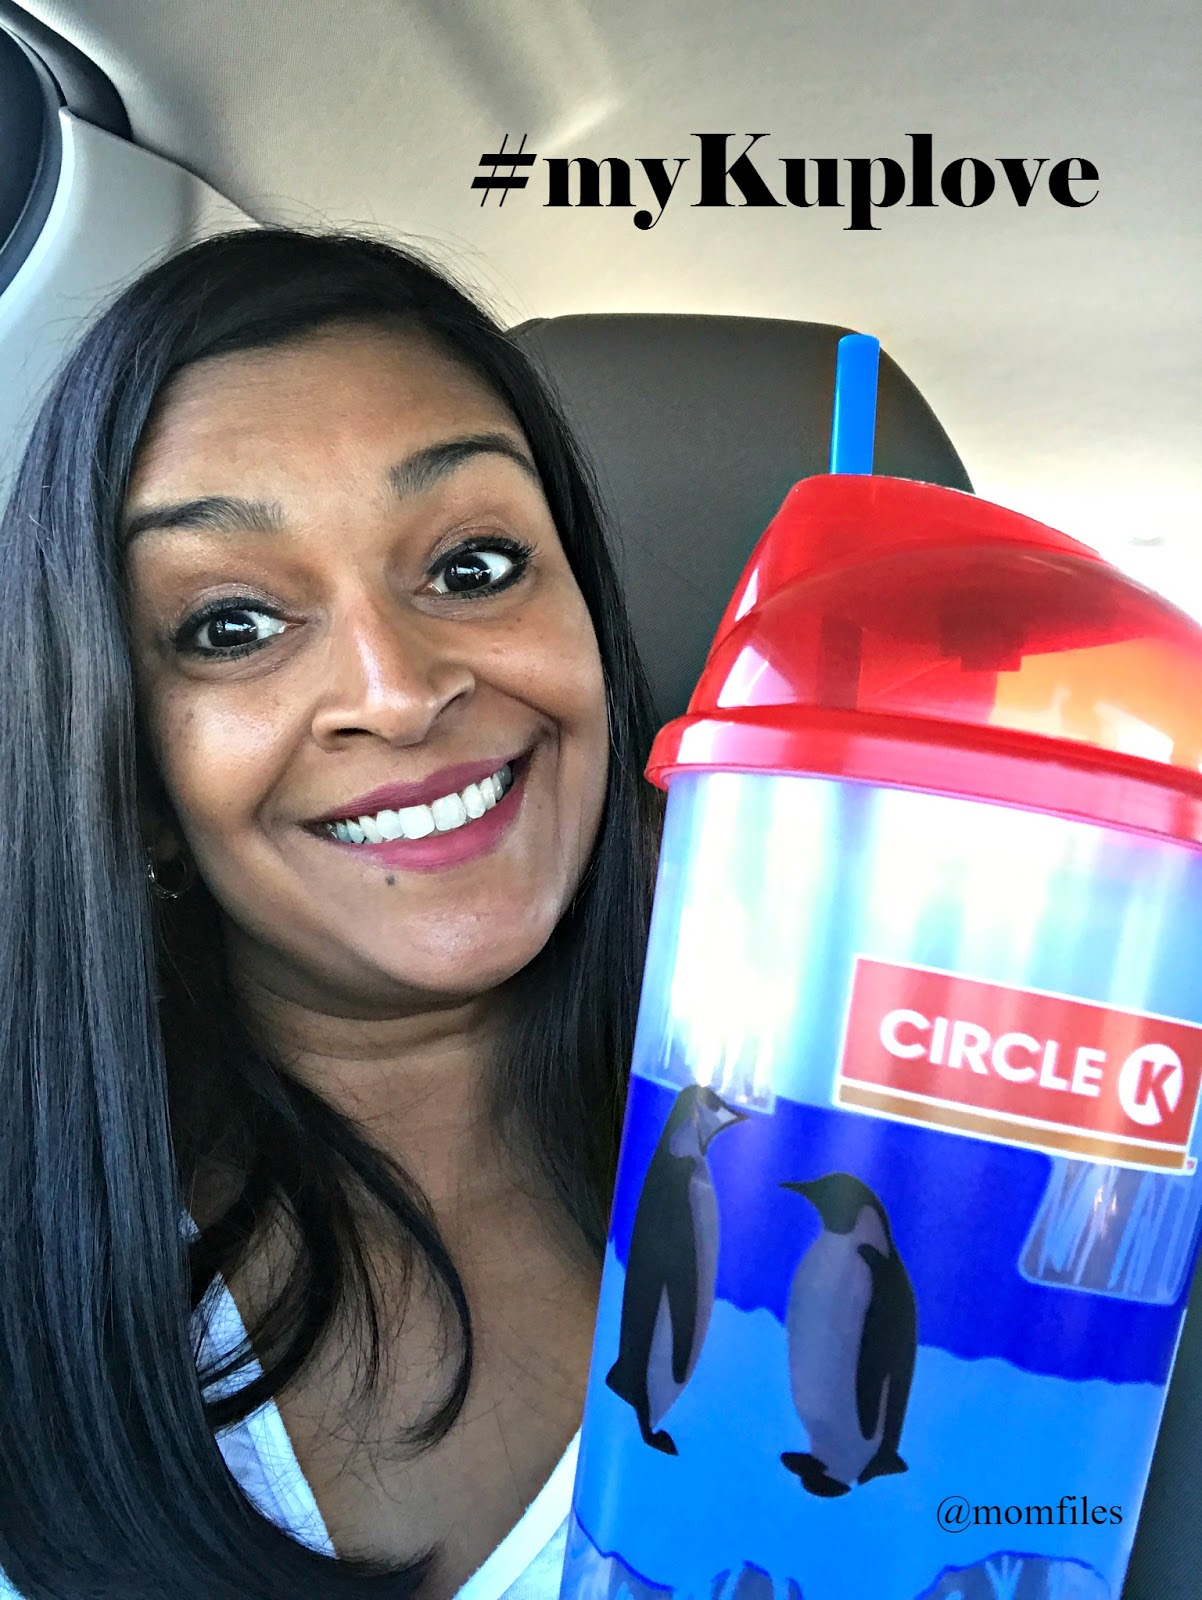 Get Your #myKuplove 25¢ Drink Refills At Circle K Southeast